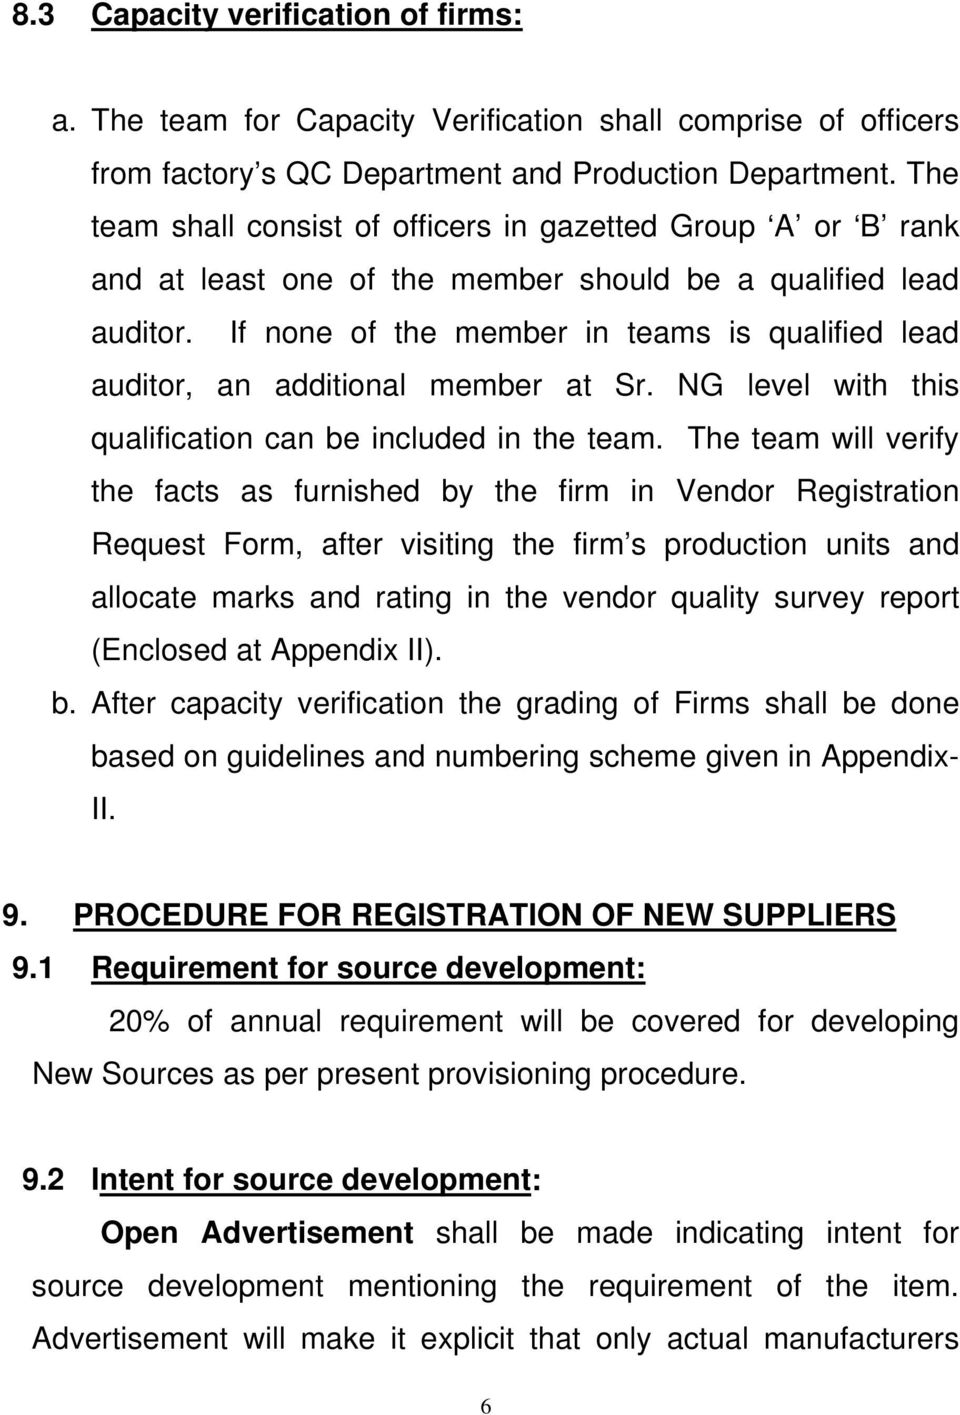 If none of the member in teams is qualified lead auditor, an additional member at Sr. NG level with this qualification can be included in the team.